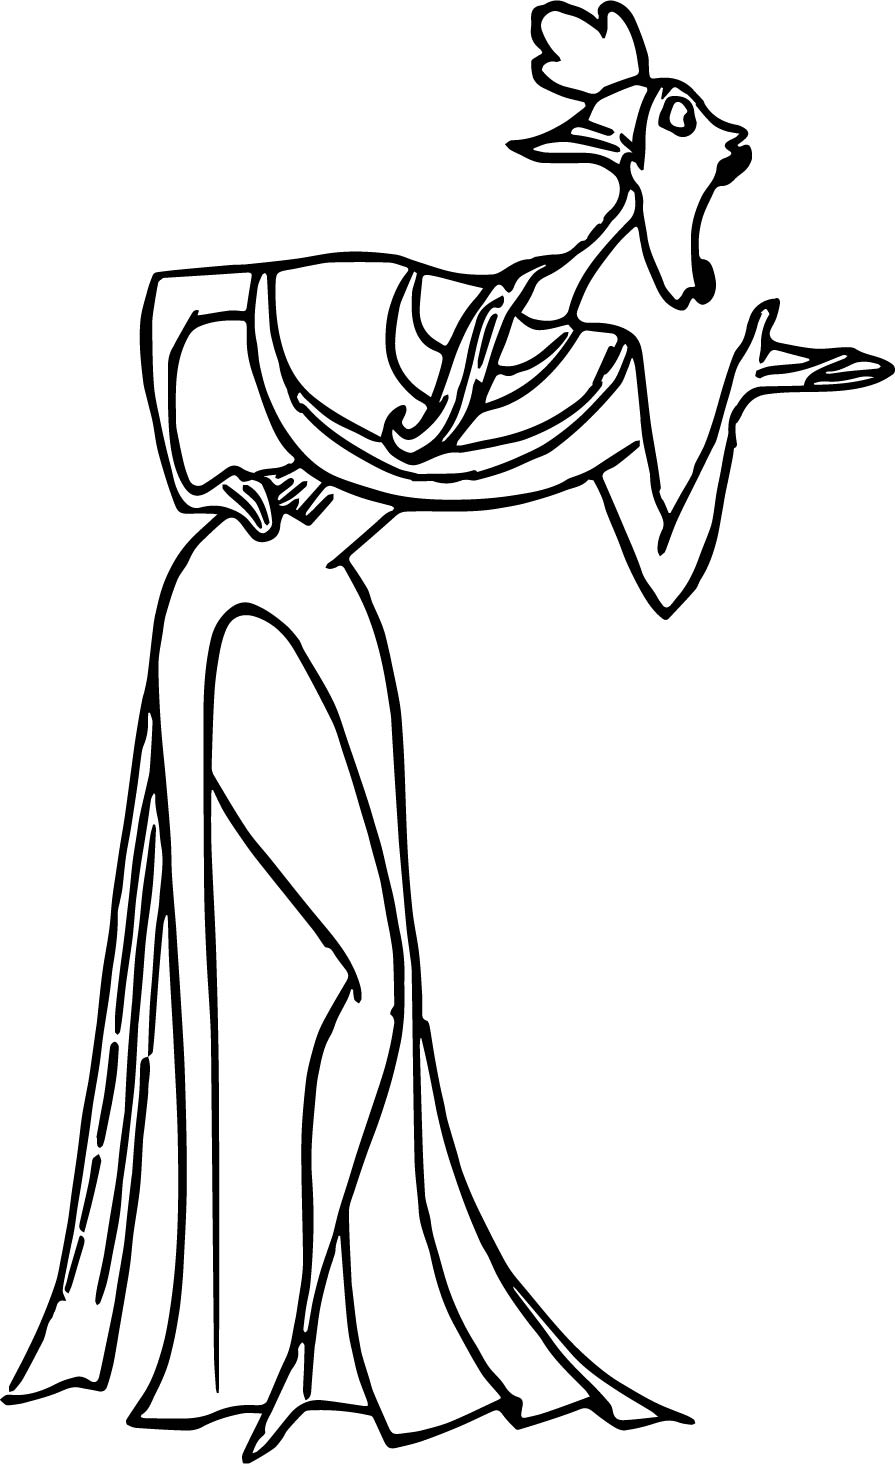 Clio Coloring Pages